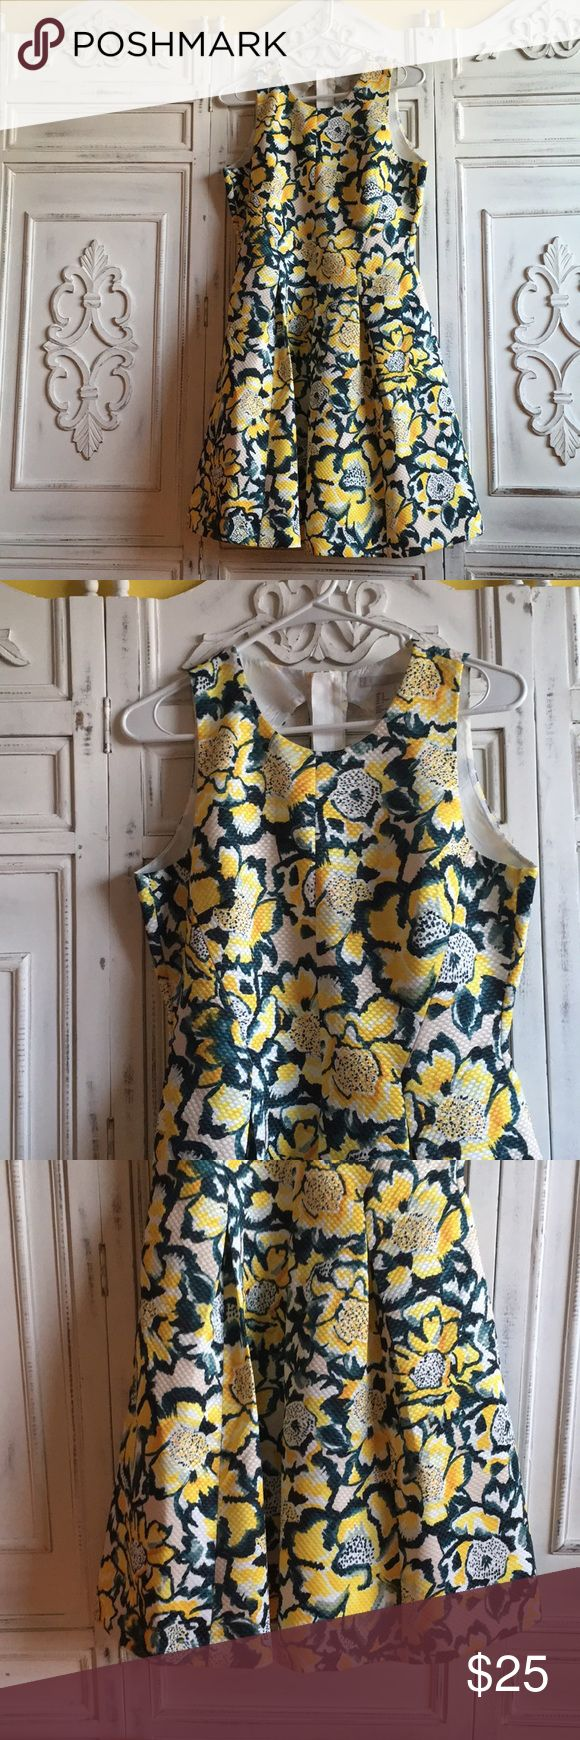 H&M floral dress! Yellow, white and green! 🌼👗 H&M floral work/going out dress. This dress is beautiful in person. It's never been worn. It has a very nice detailed style in the back of the dress. 🌼👗 H&M Dresses